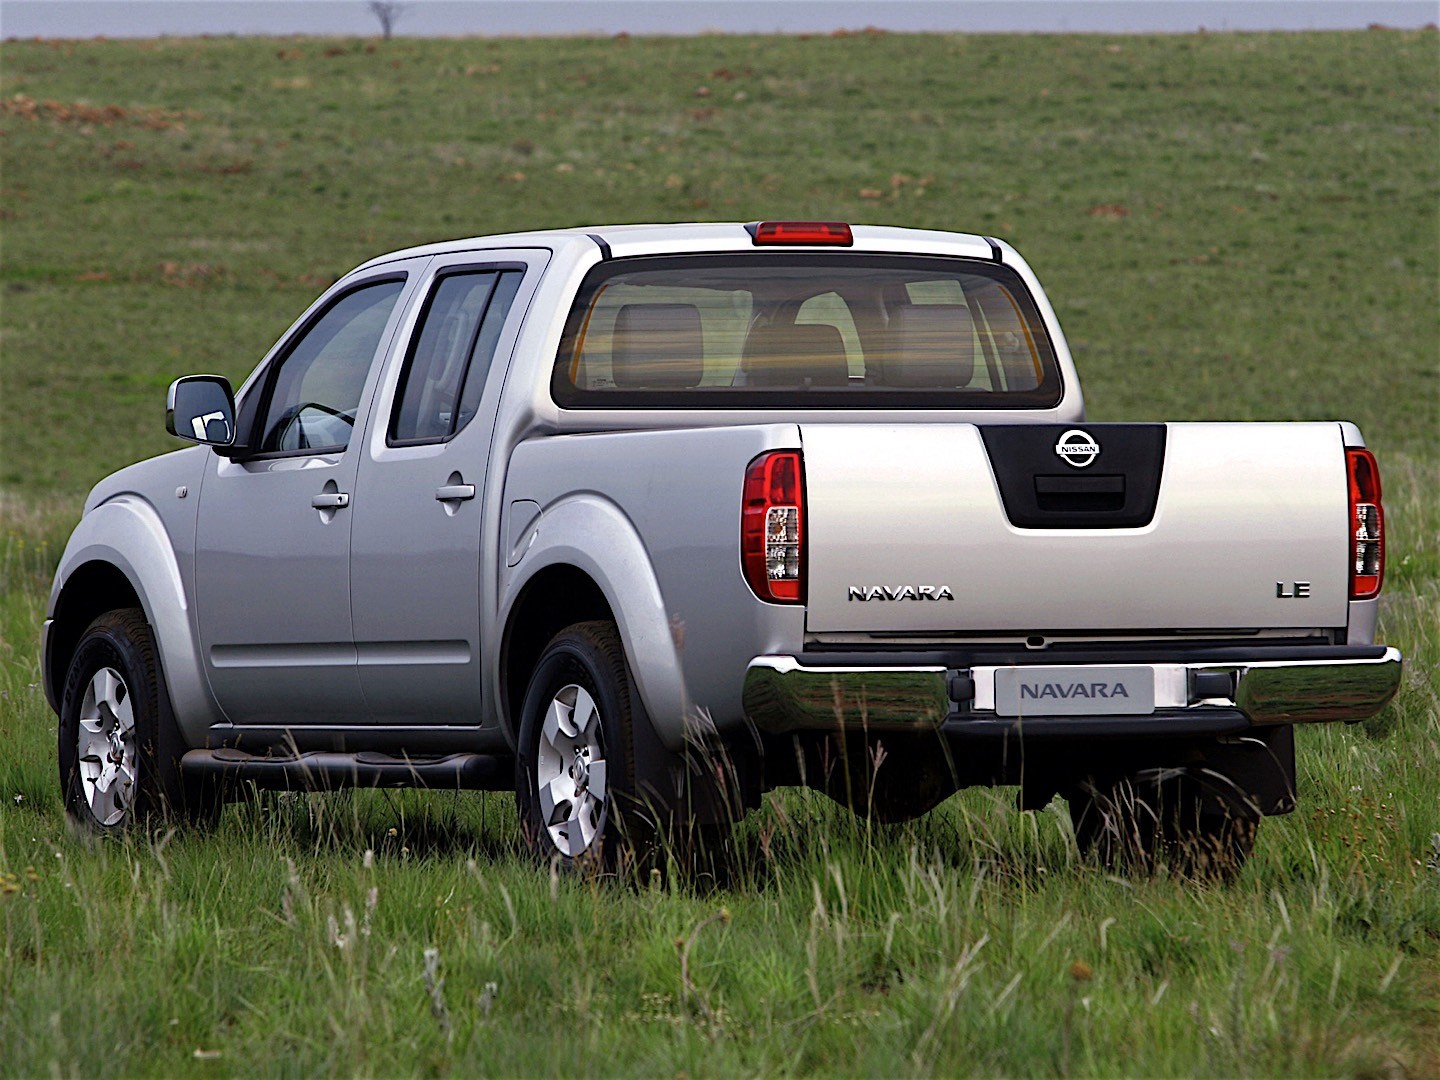 nissan navara frontier double cab specs photos 2005 2006 2007 2008 2009 2010 2011. Black Bedroom Furniture Sets. Home Design Ideas